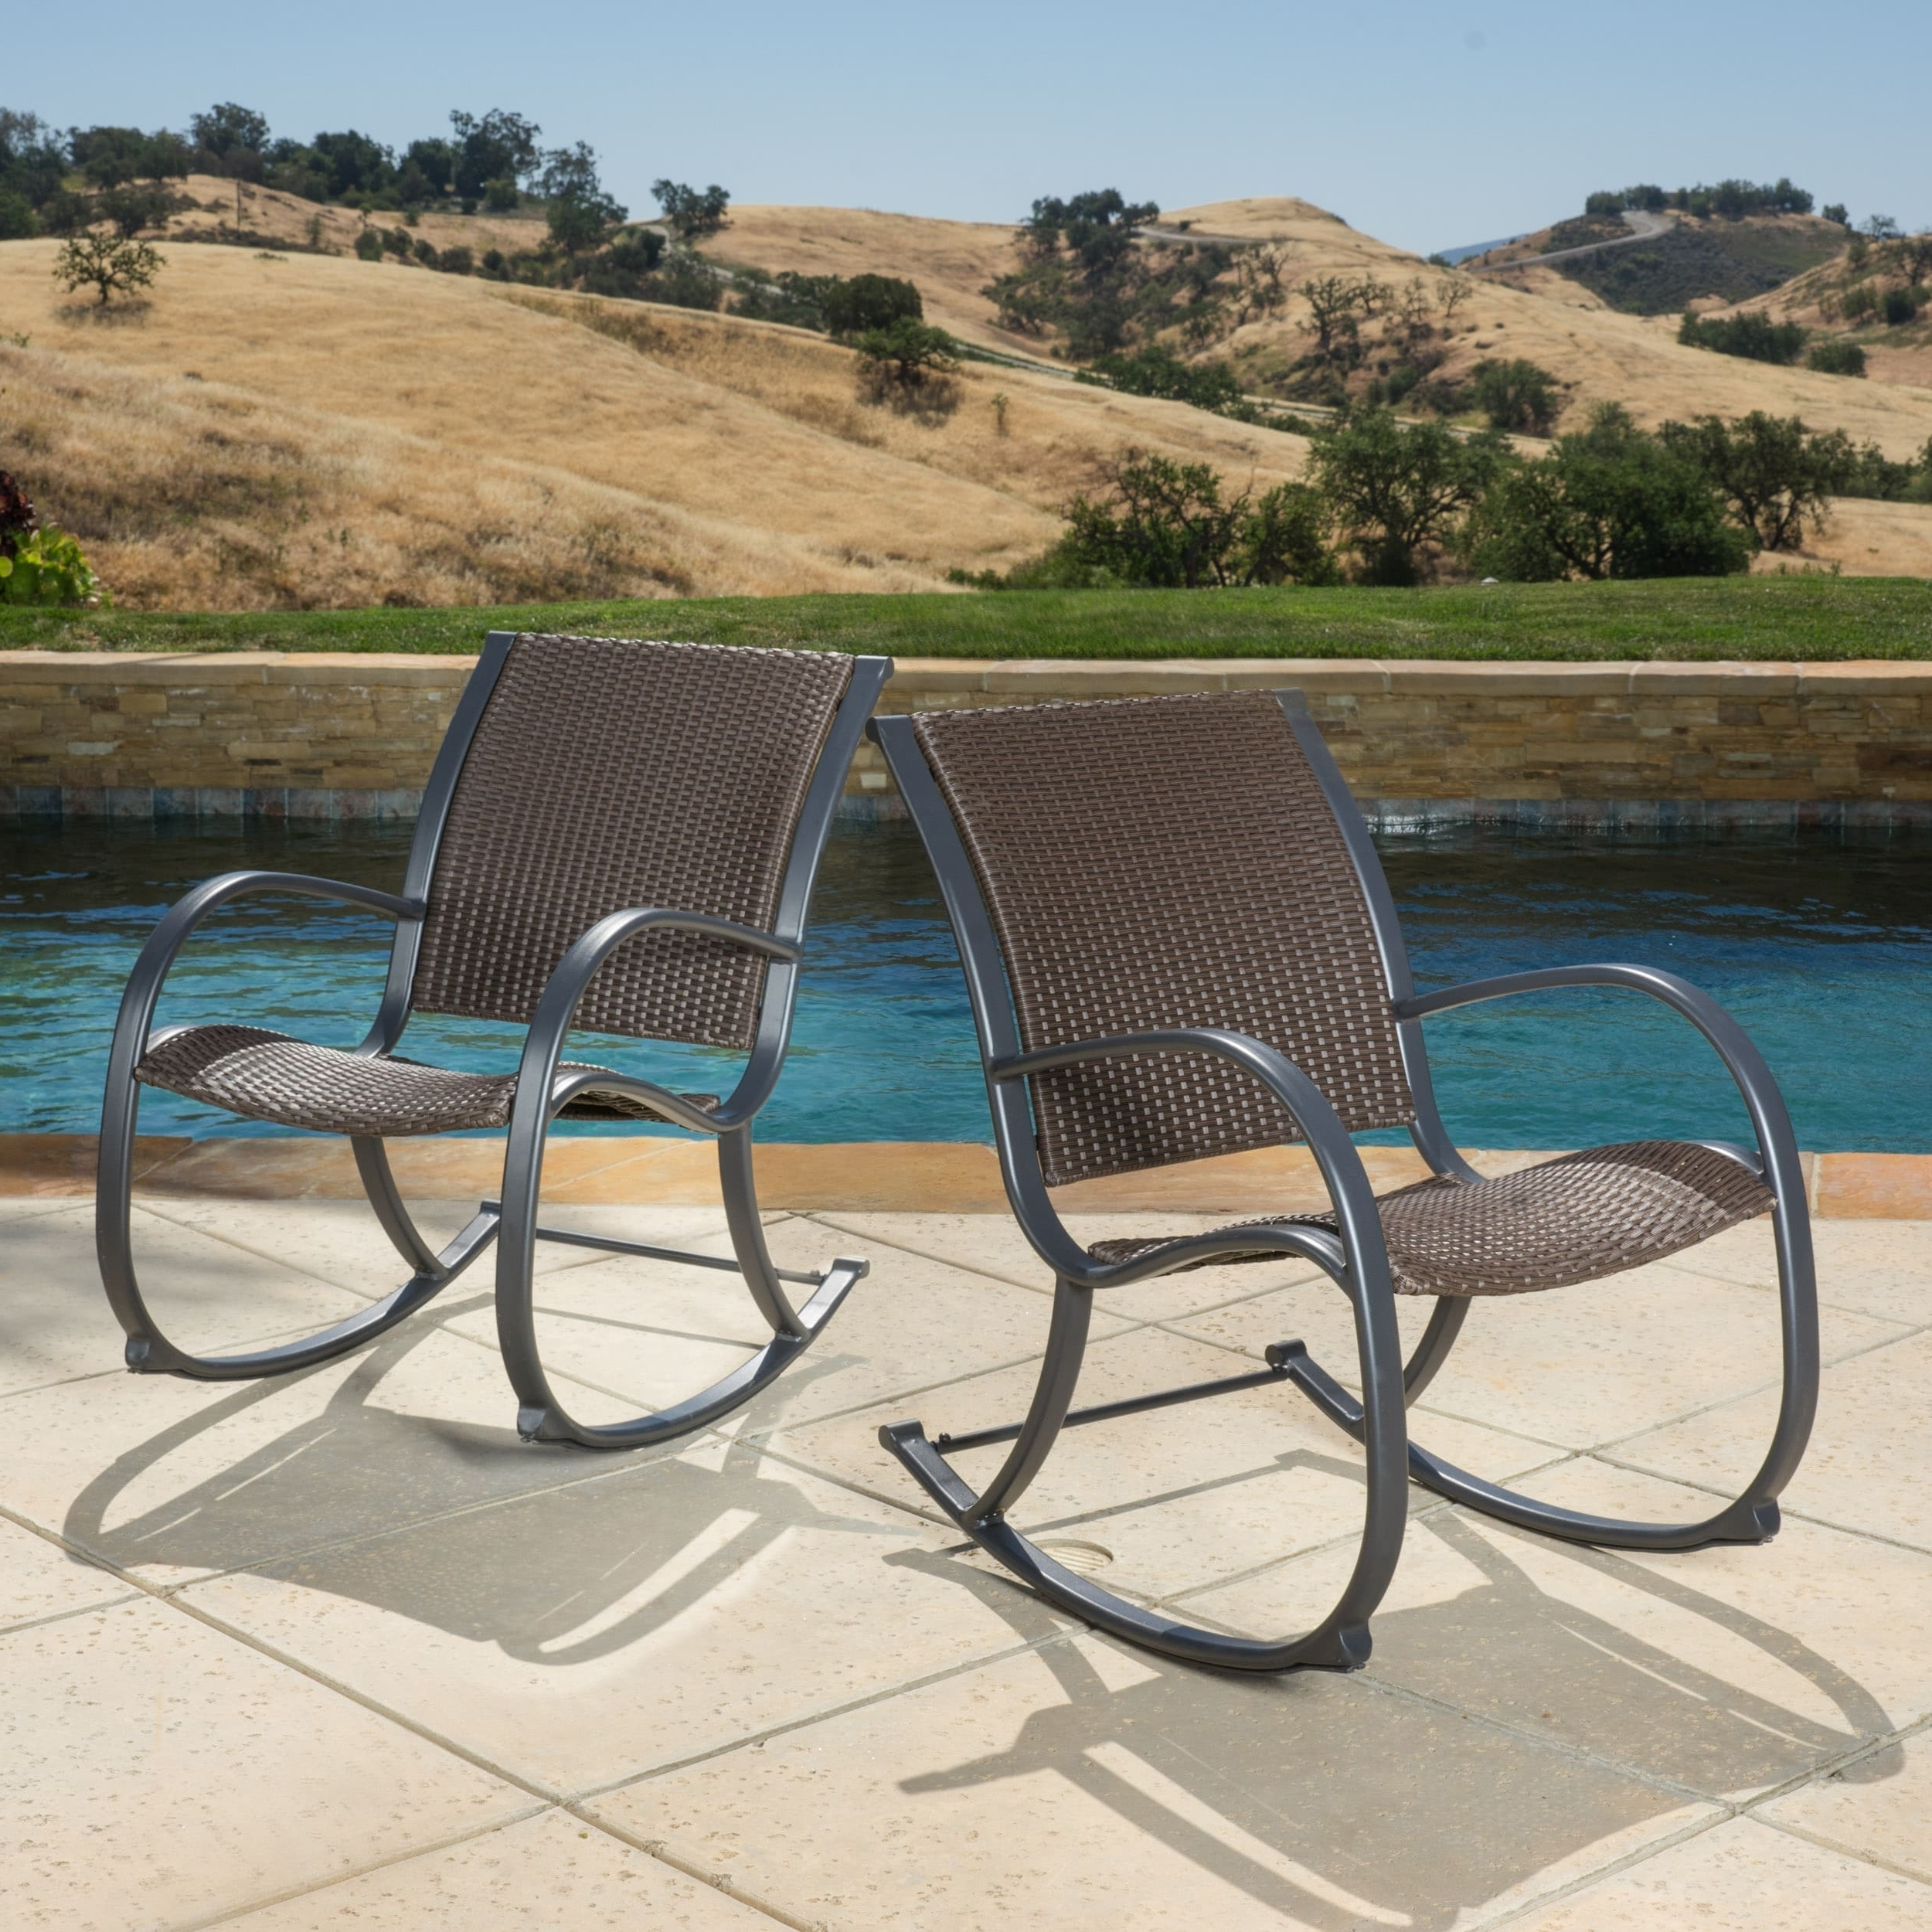 Shop Gracie's Outdoor Wicker Rocking Chair (Set Of 2)Christopher Within Popular Wicker Rocking Chairs For Outdoors (View 8 of 15)